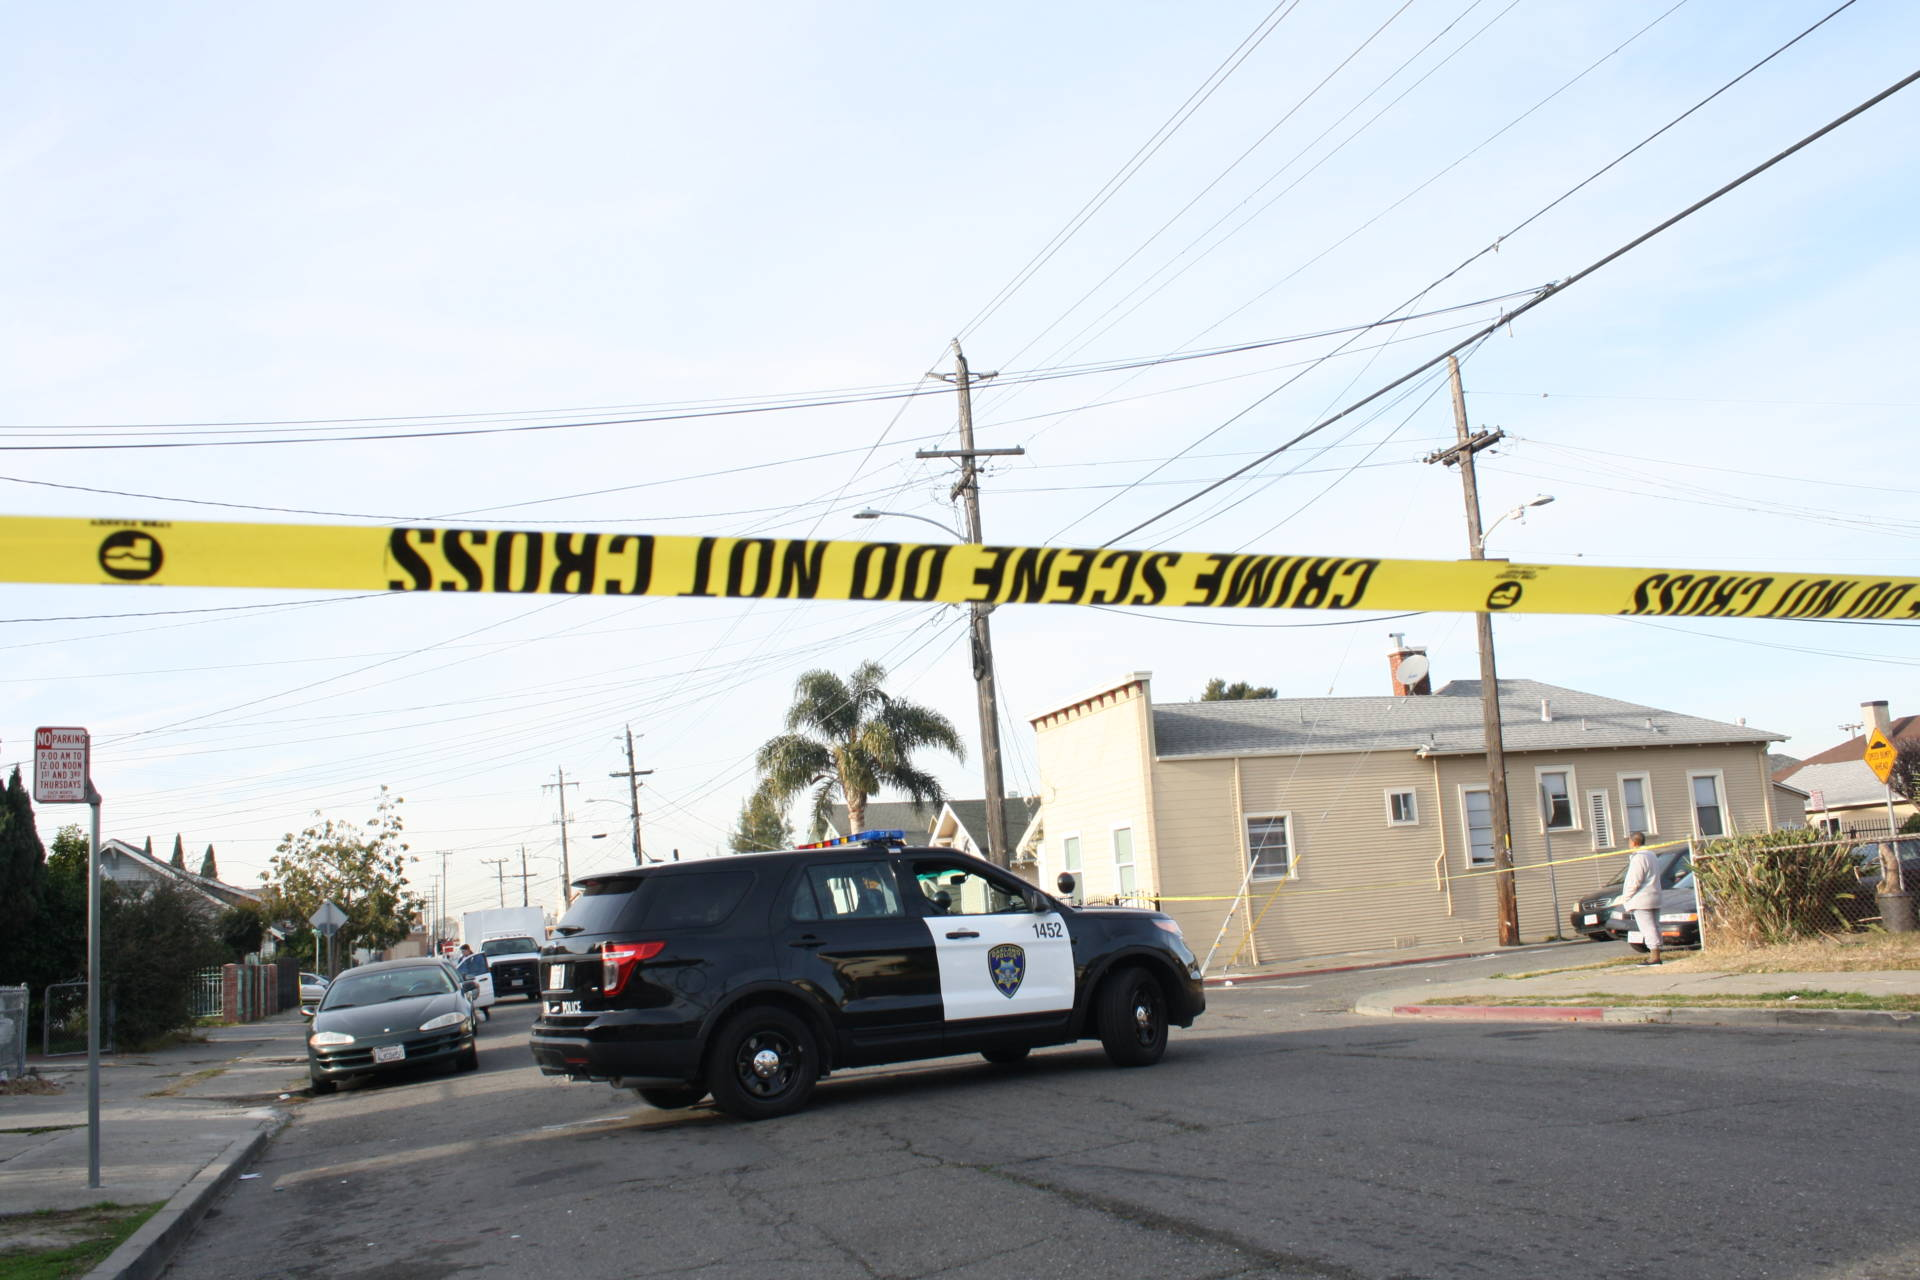 An Oakland Police Department vehicle parked at a crime scene.